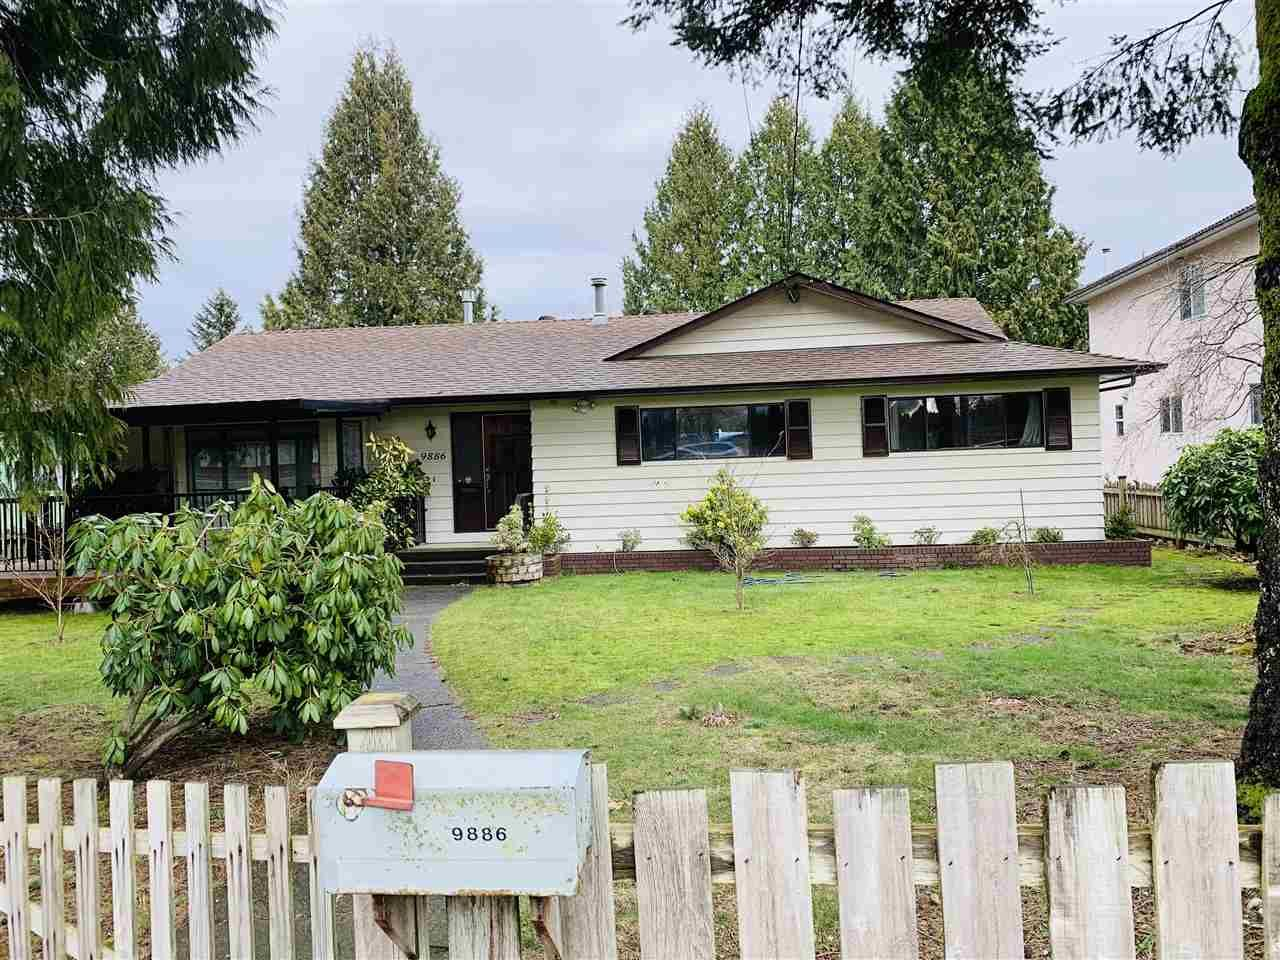 Main Photo: 9886 156 Street in Surrey: Guildford House for sale (North Surrey)  : MLS®# R2541081